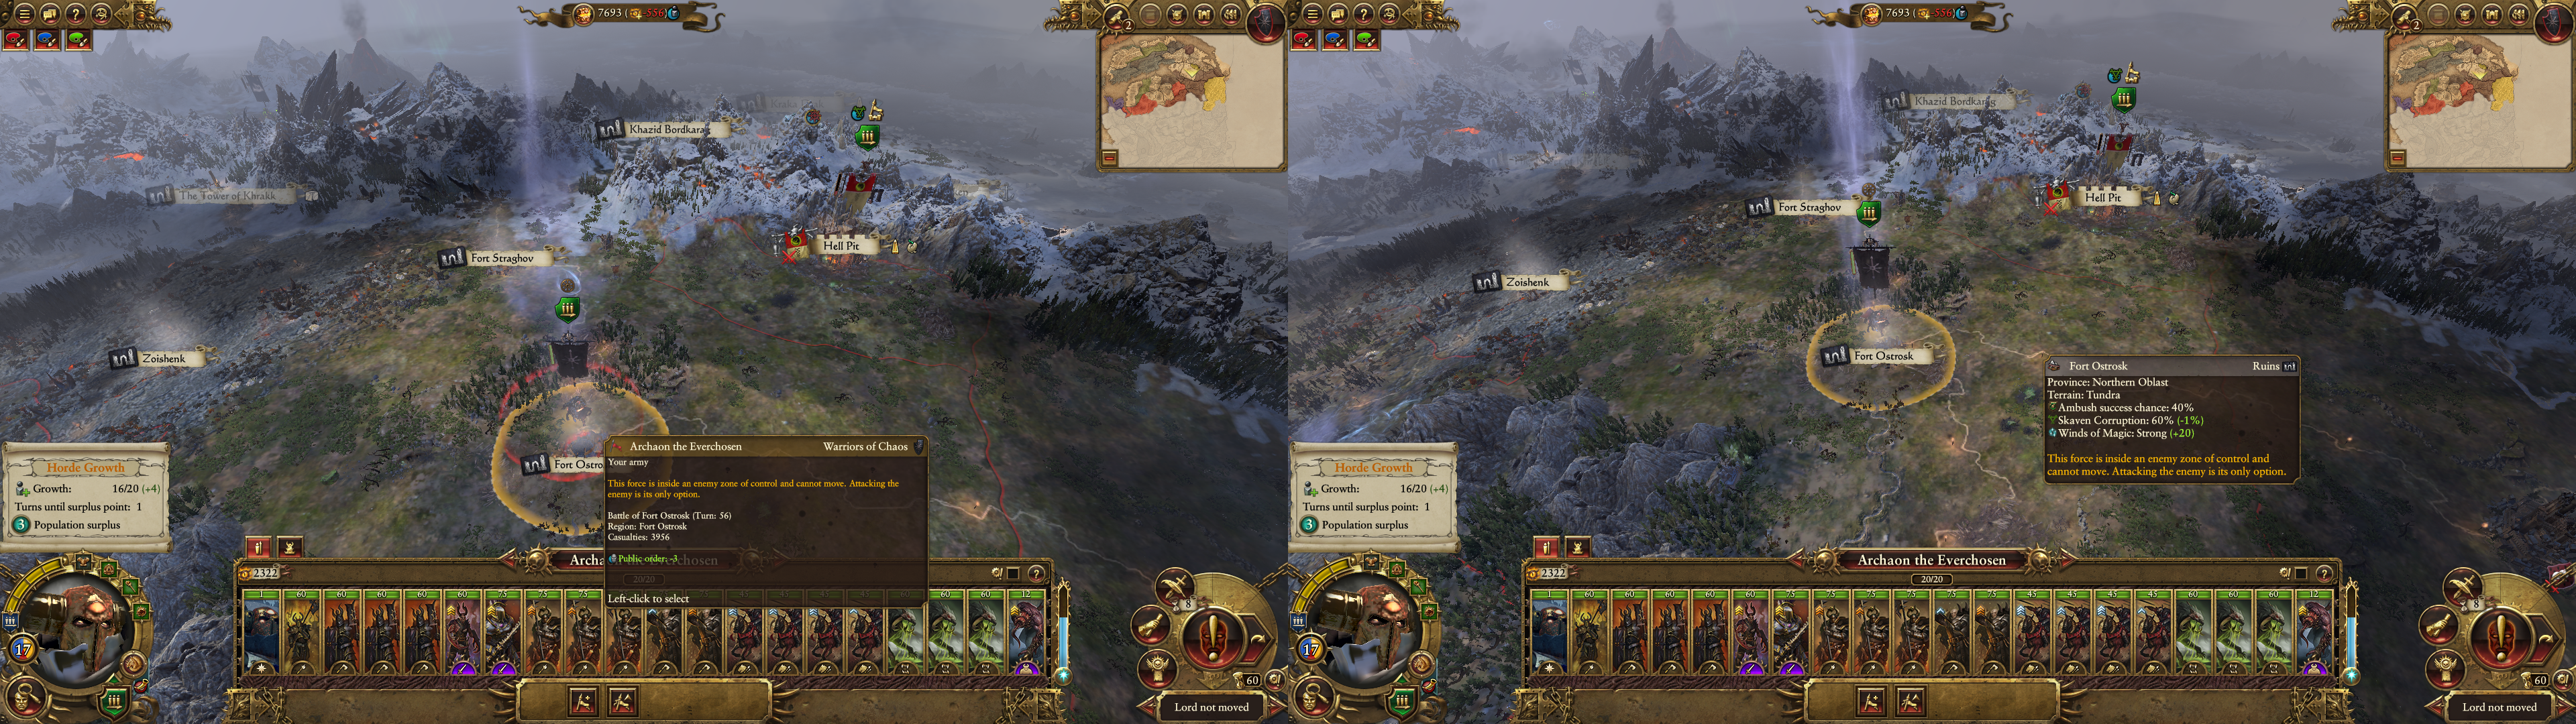 BUG: Can't move in multiplayer campaign after attacking an army